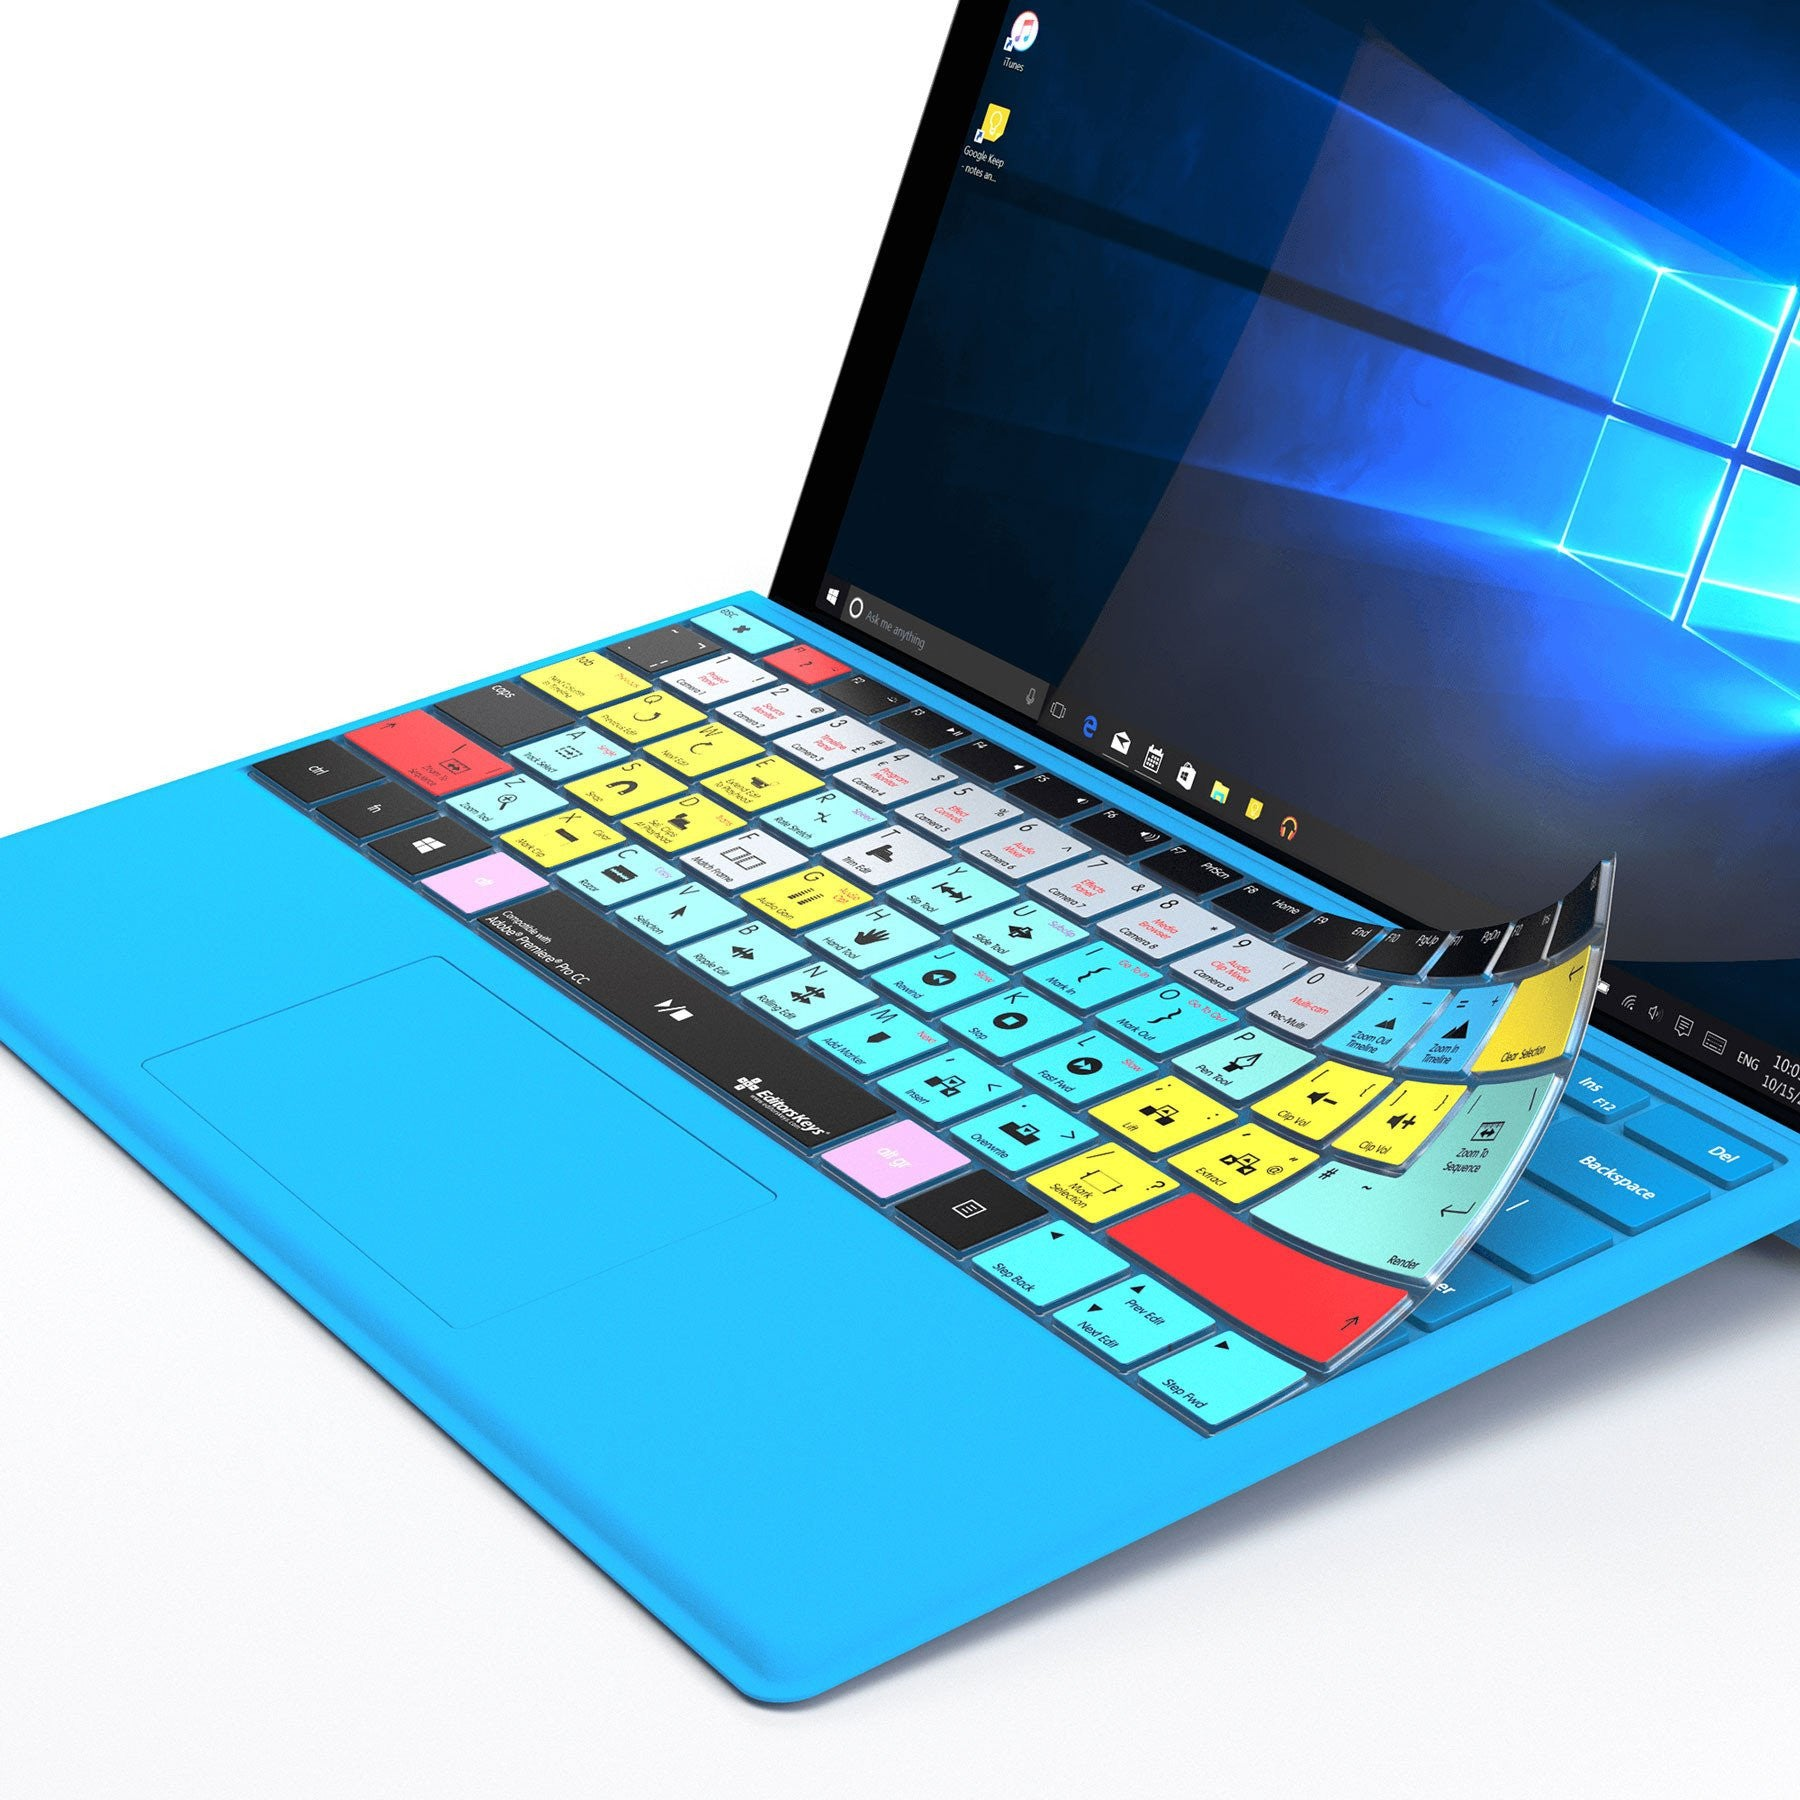 Adobe Photoshop Keyboard Covers for Microsoft Surface Line